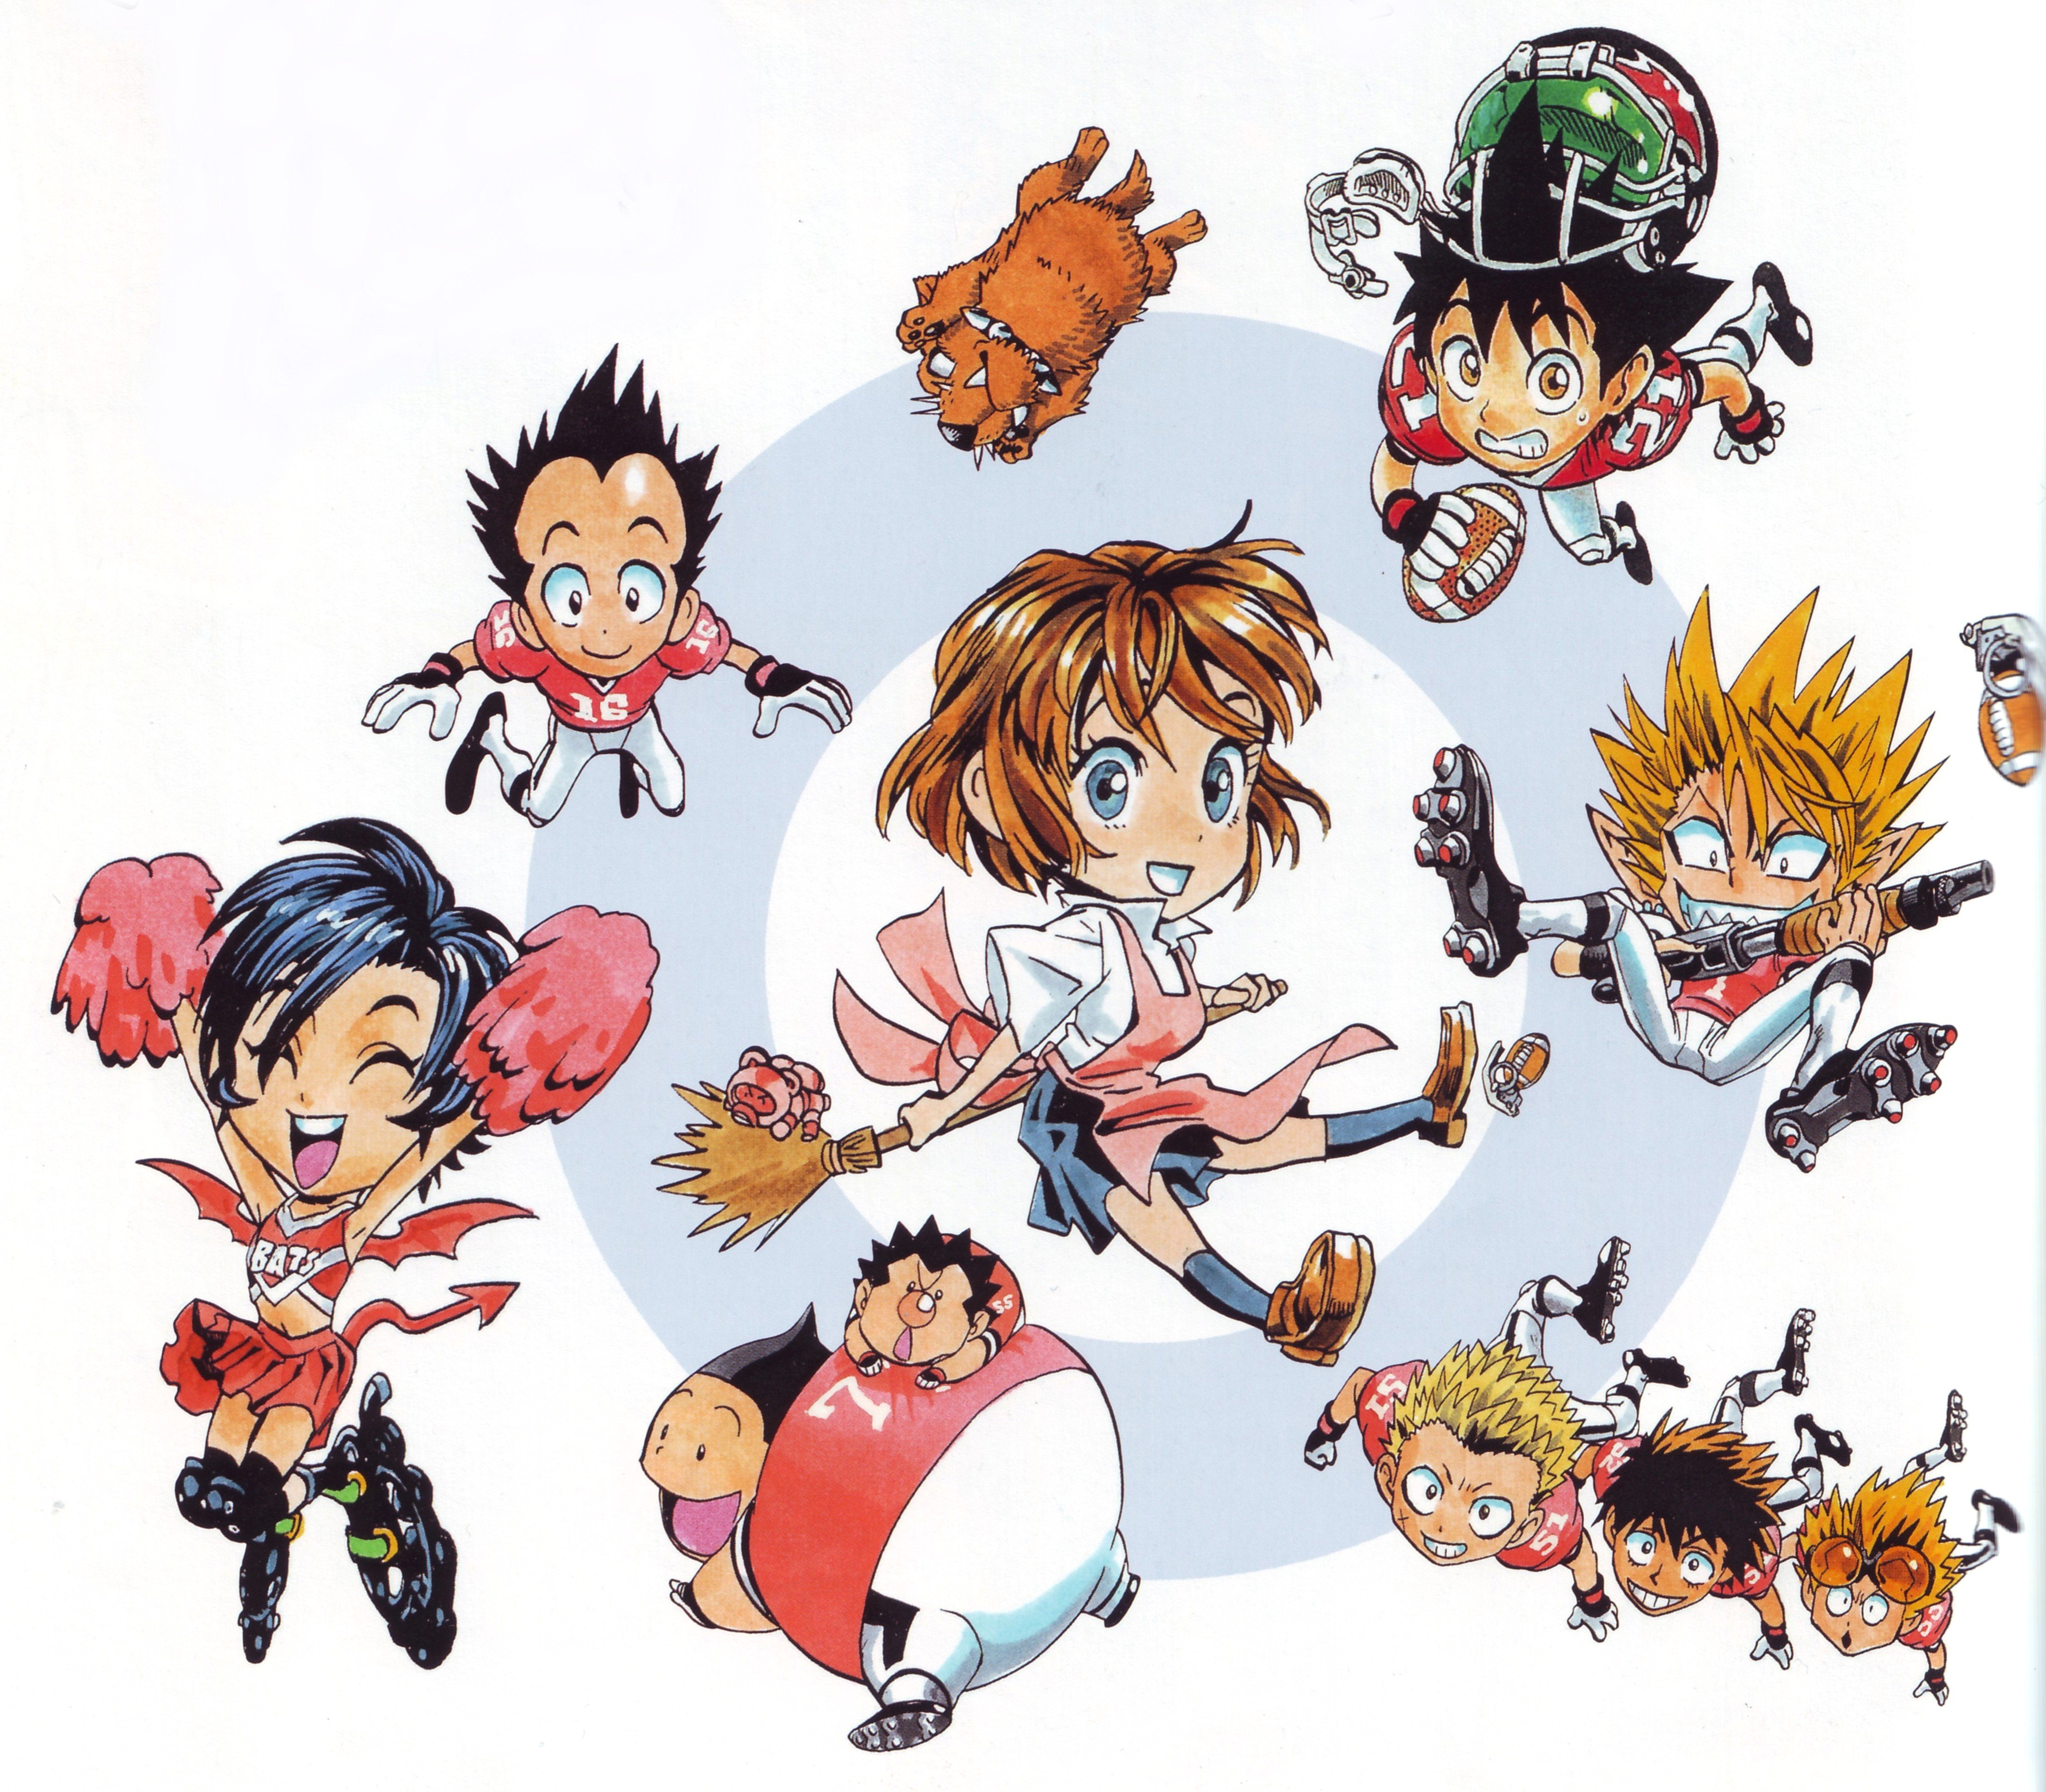 Eyesheild 21 Eyeshield: Eyeshield 21/#374710